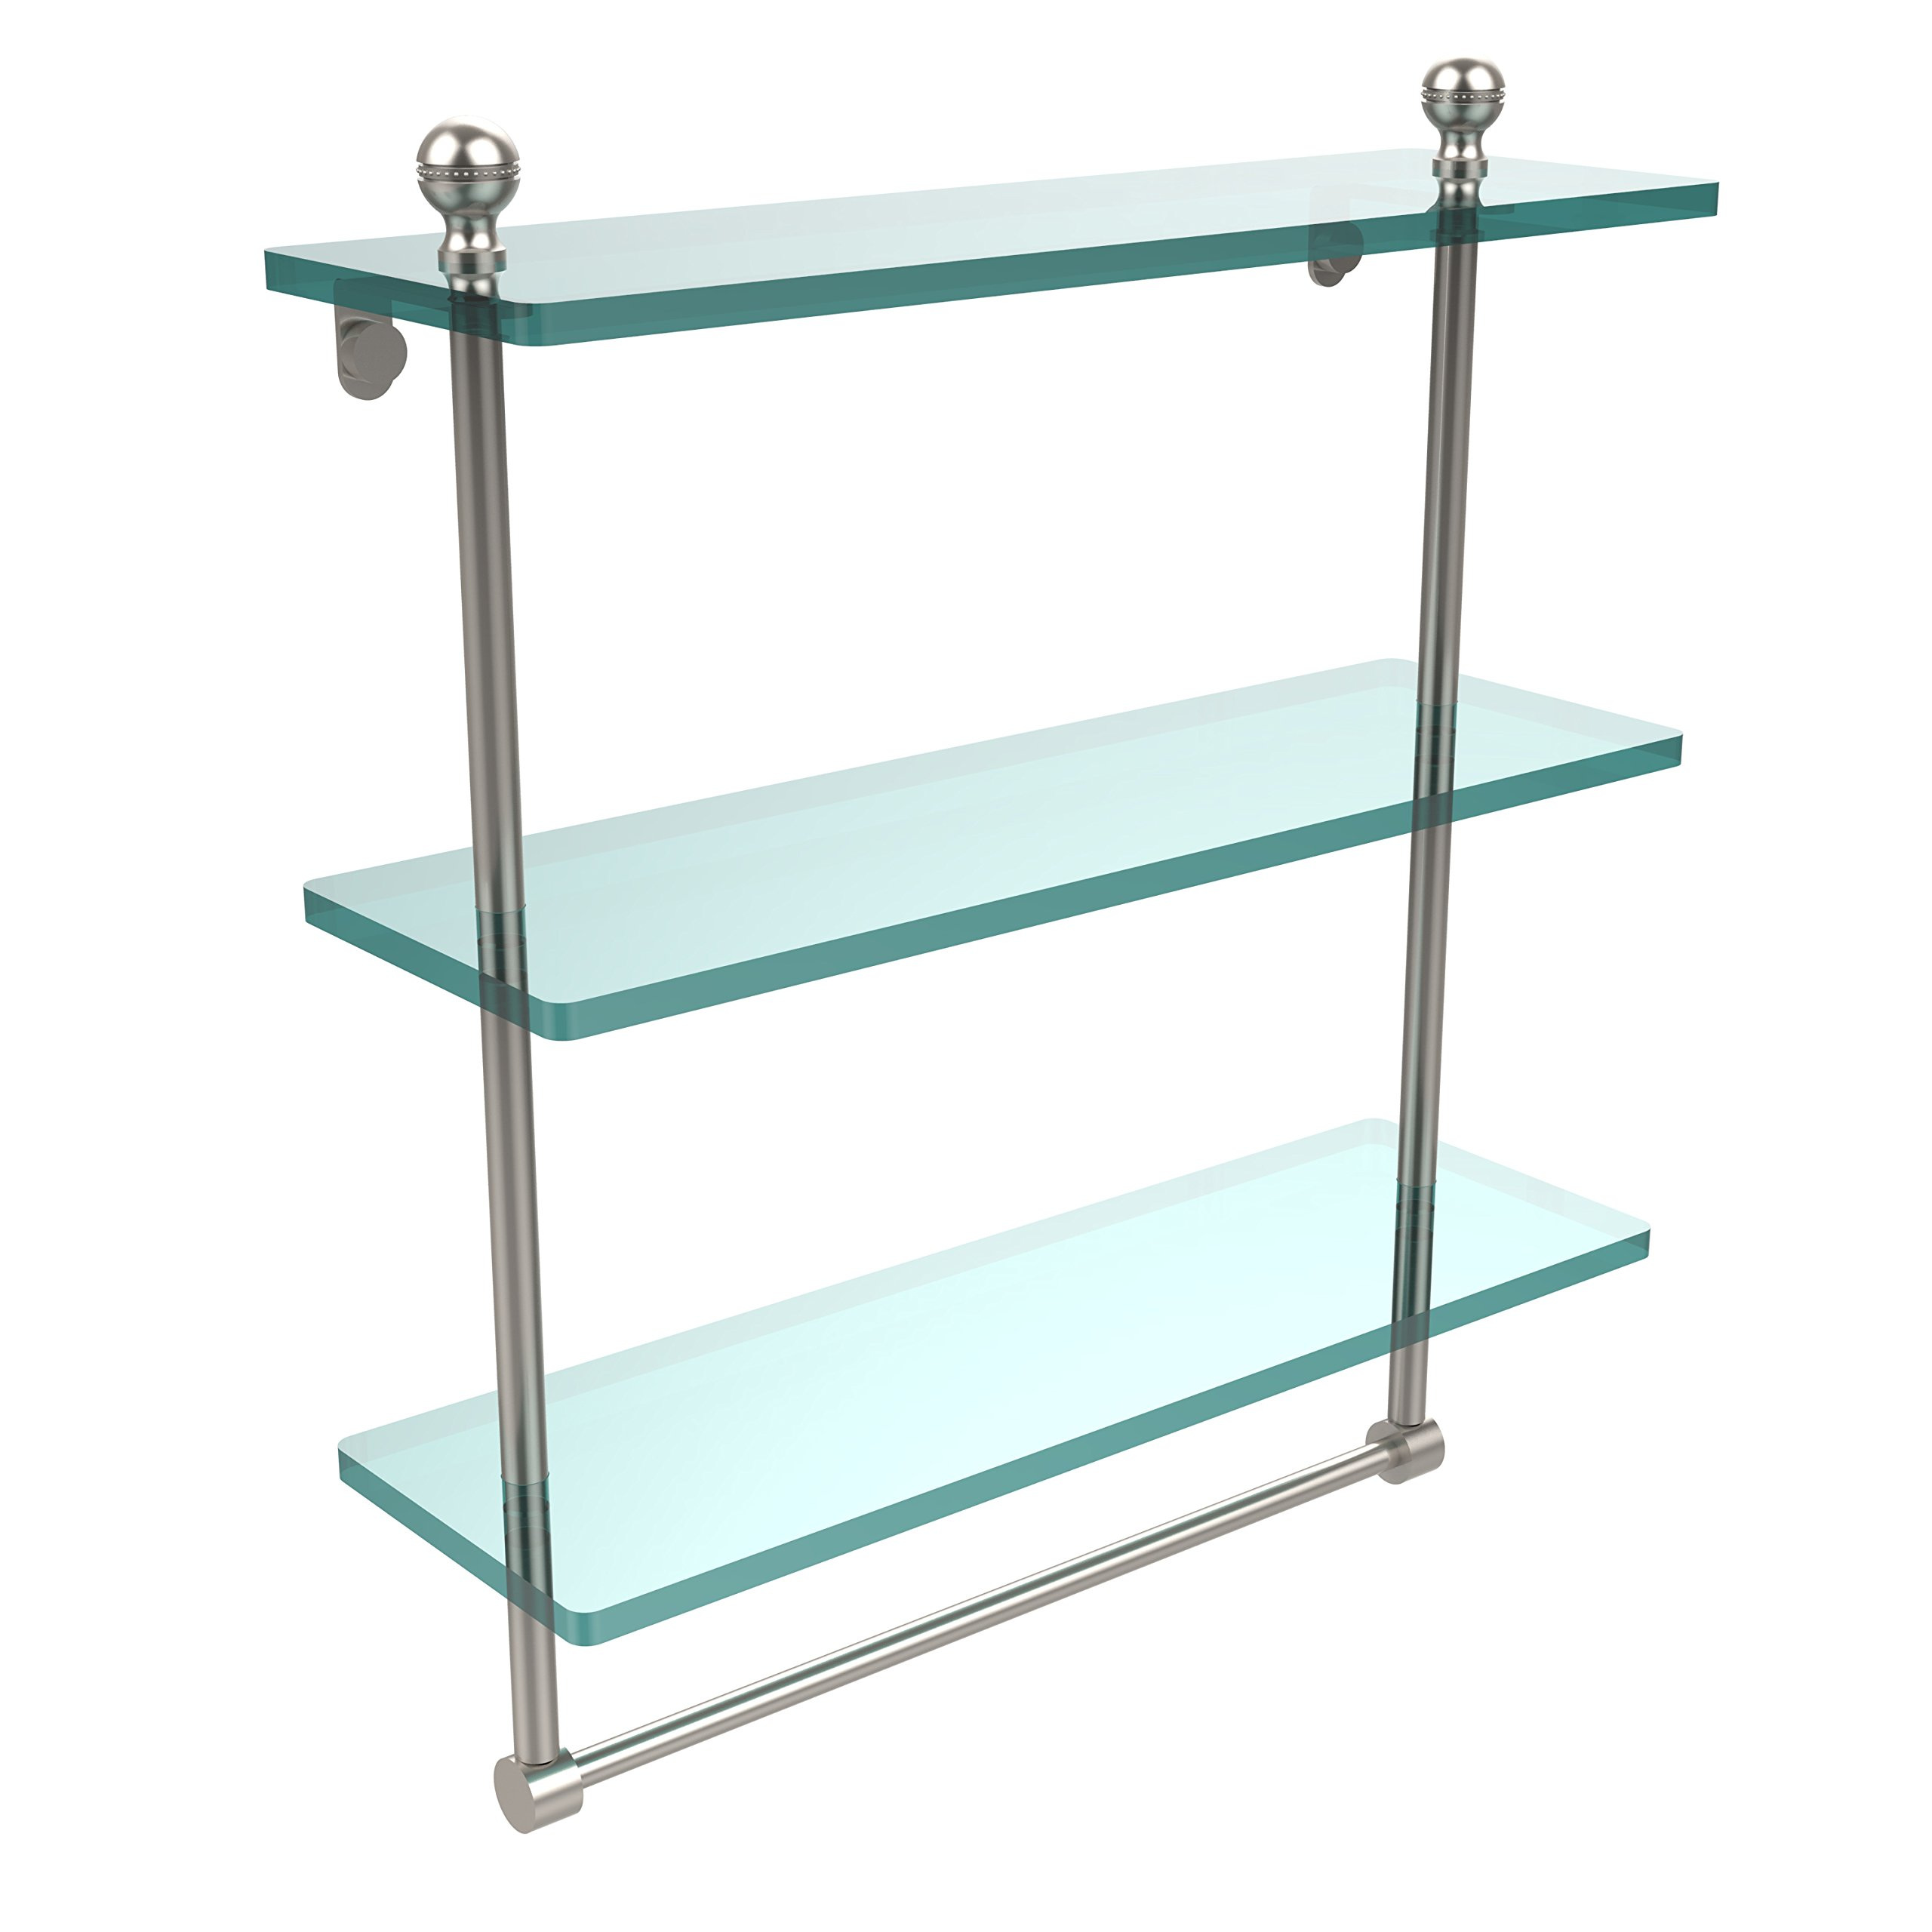 Allied Brass MA-5/16TB-SN 16 x 5 Triple Glass Shelf with TB Satin Nickel